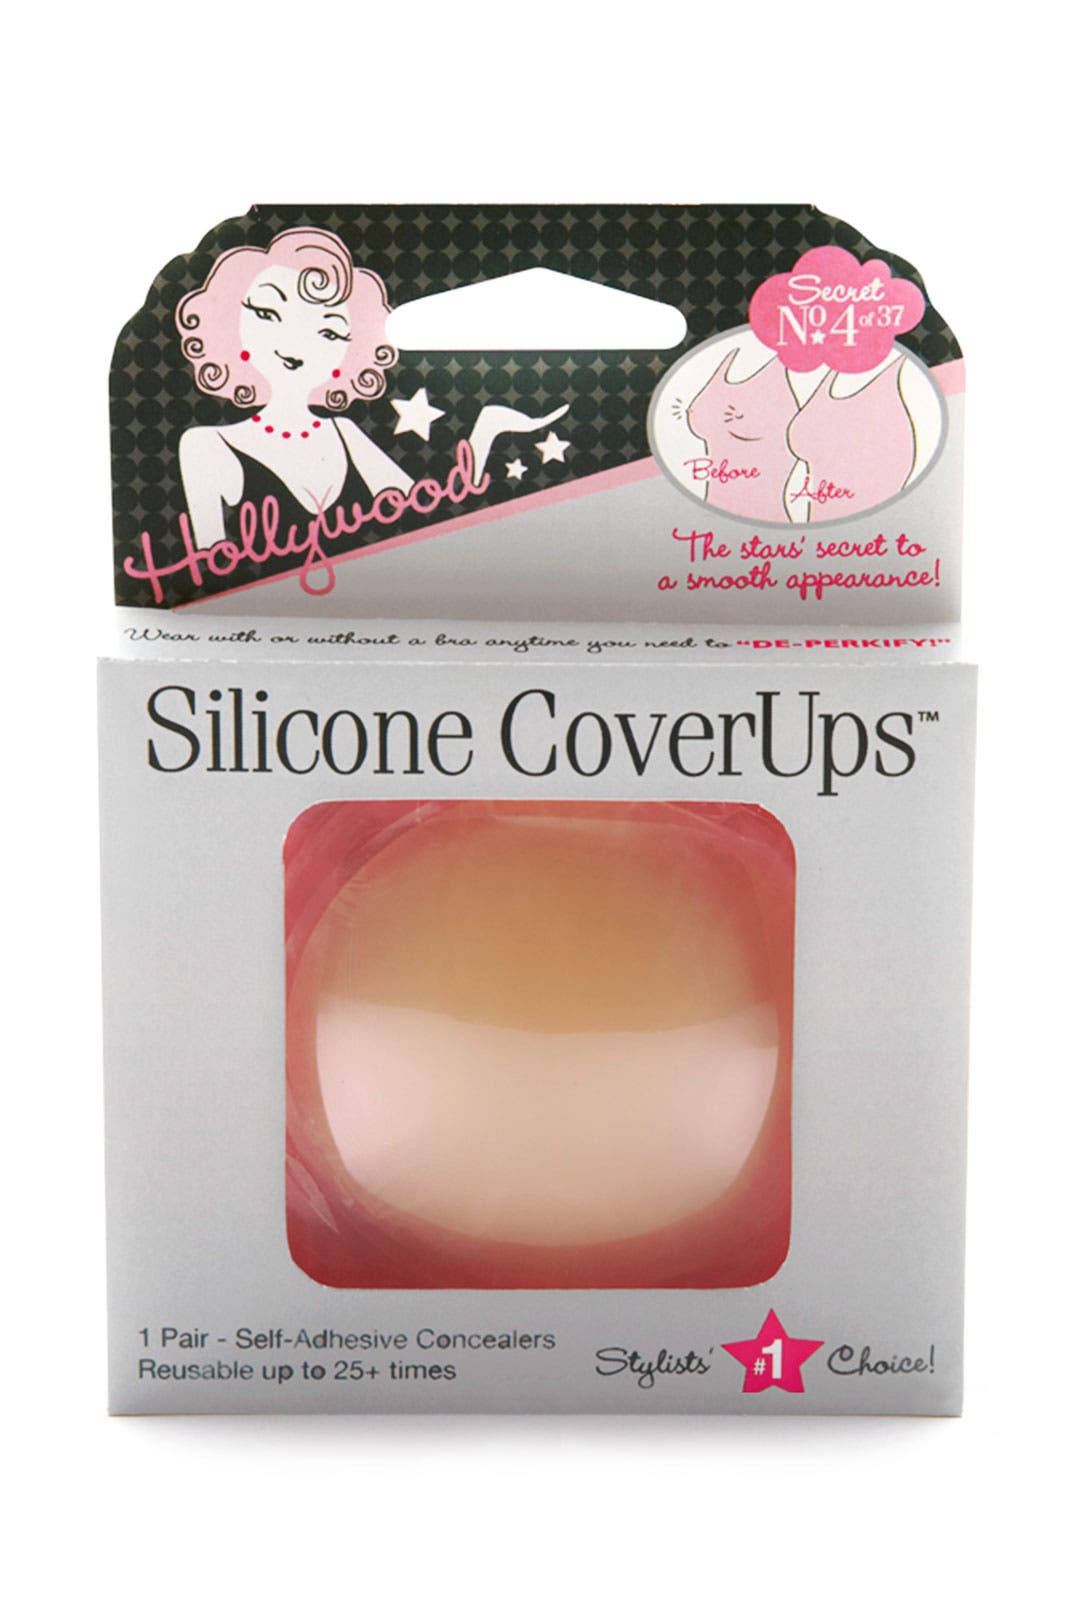 Silicone CoverUps by Hollywood Fashion Tape